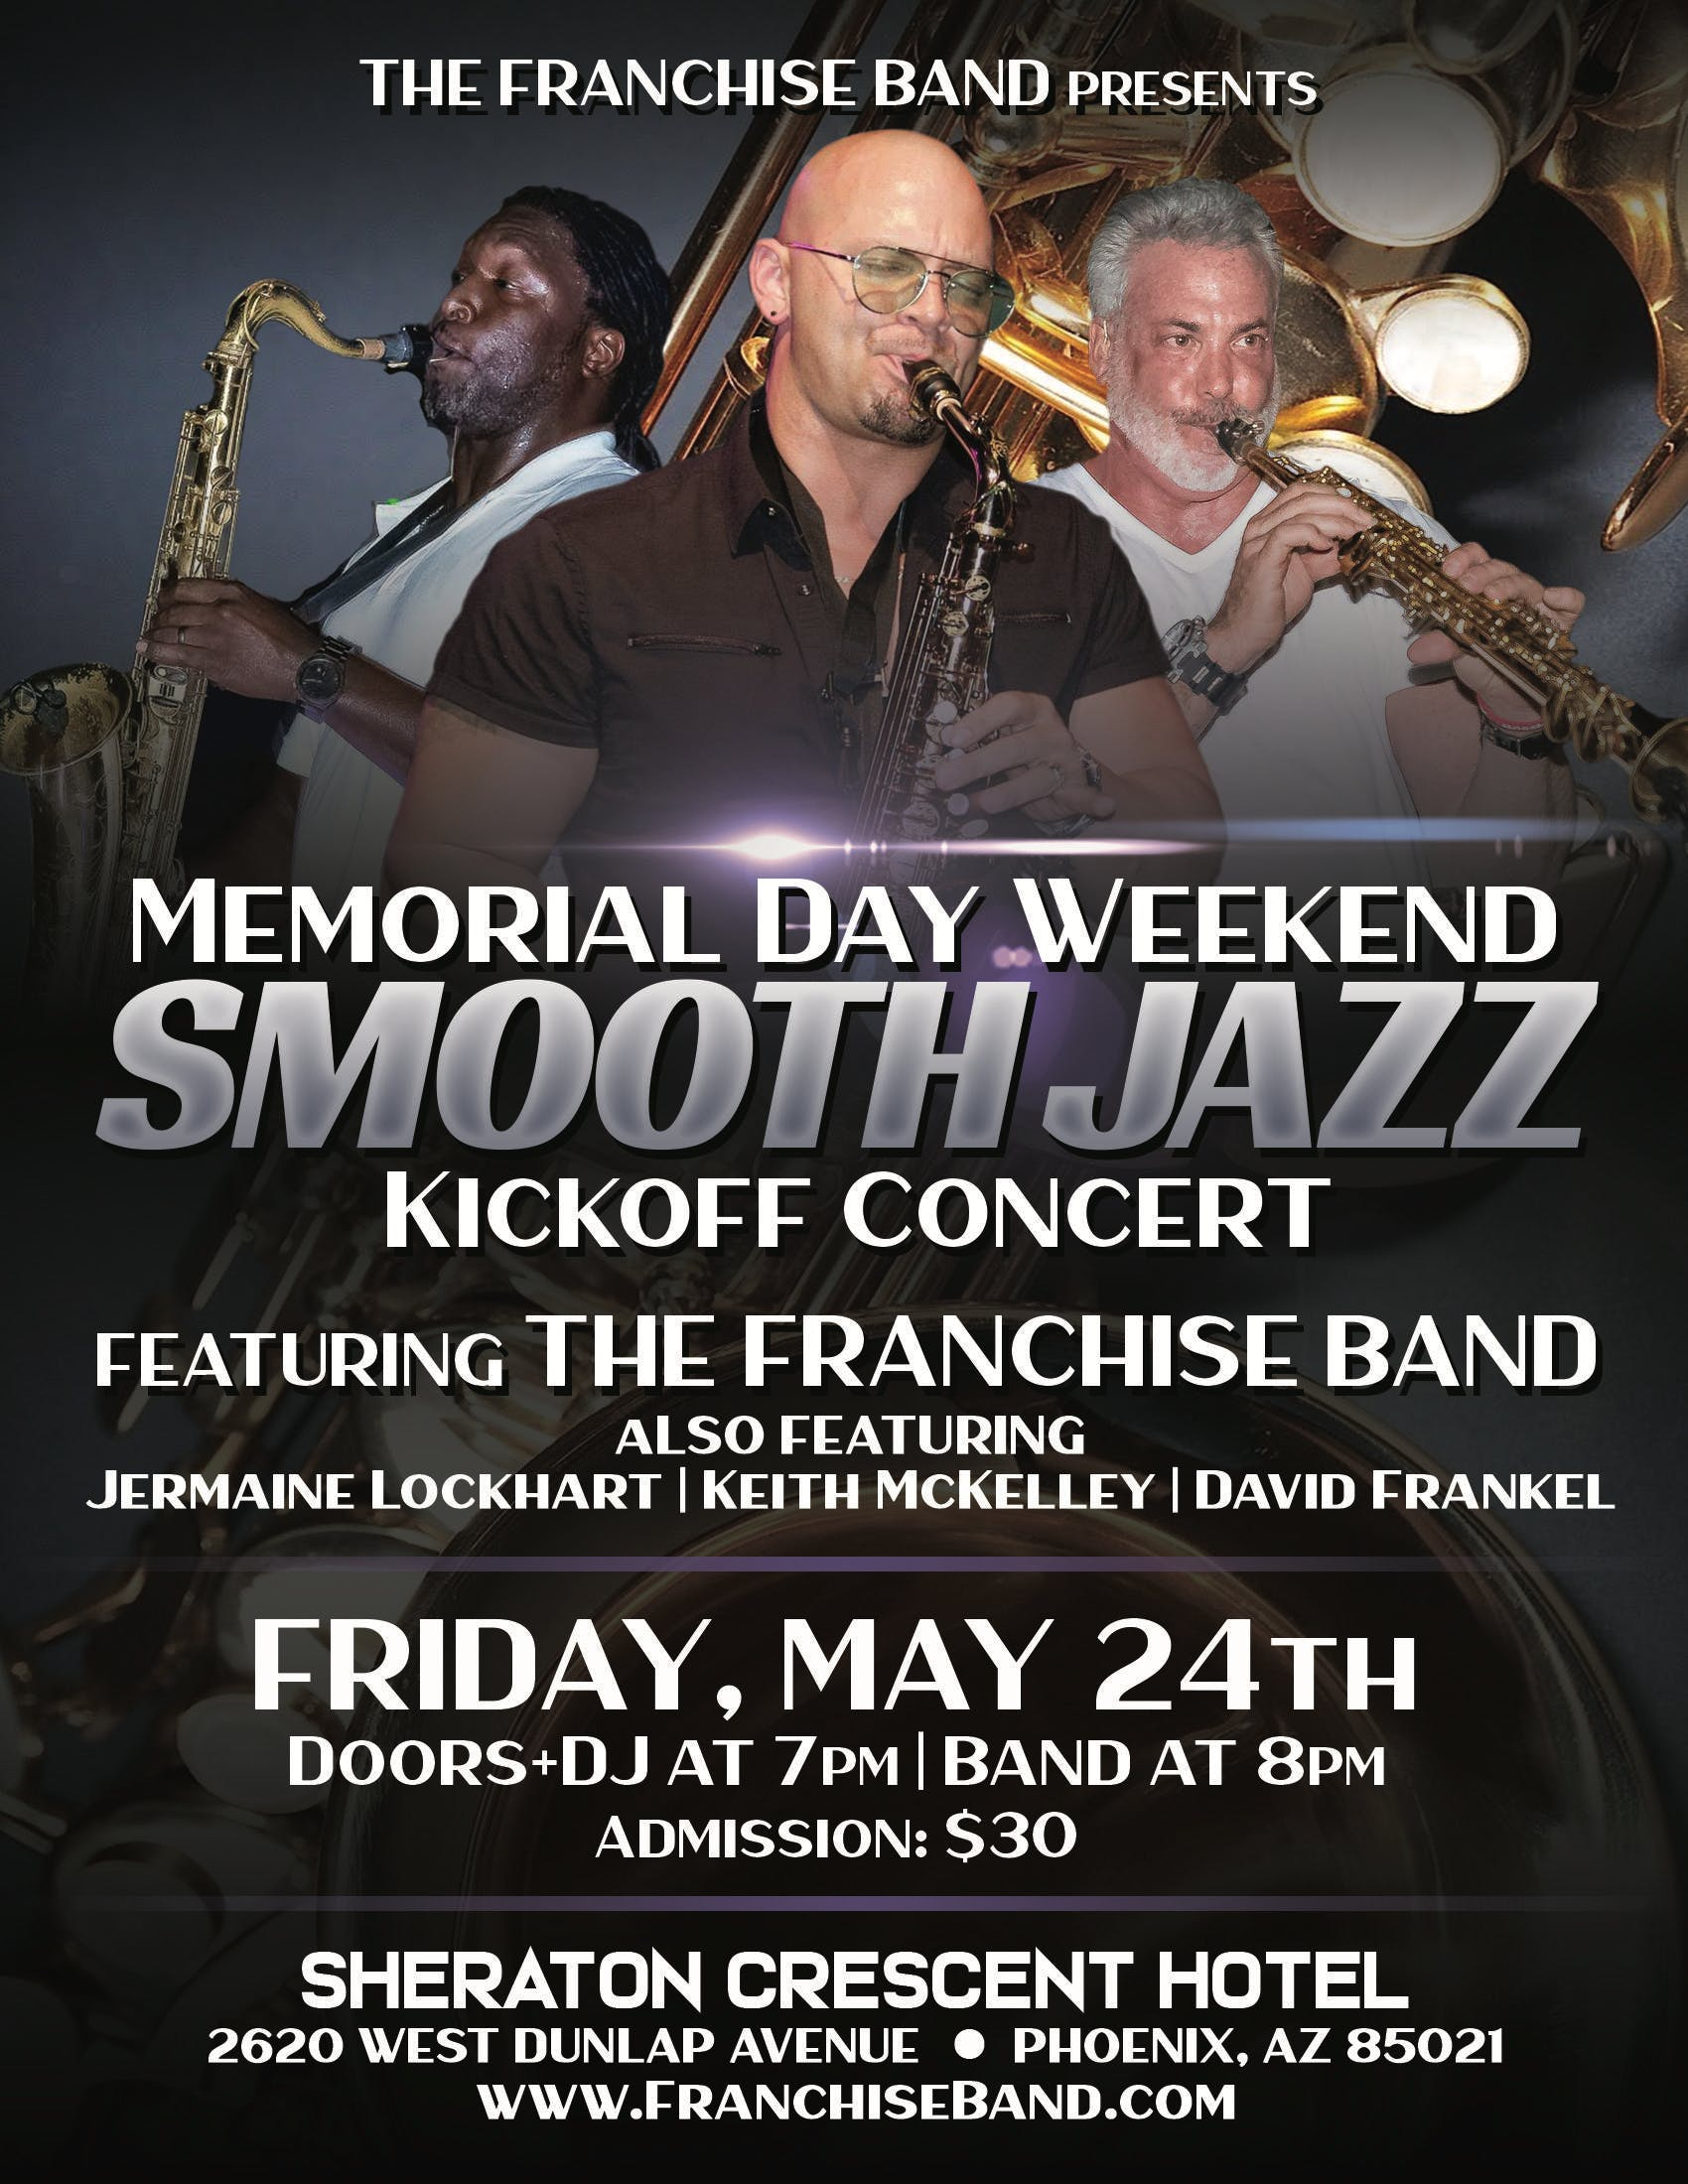 The Franchise Band Presents the Memorial Day Weekend Smooth Jazz Kickoff